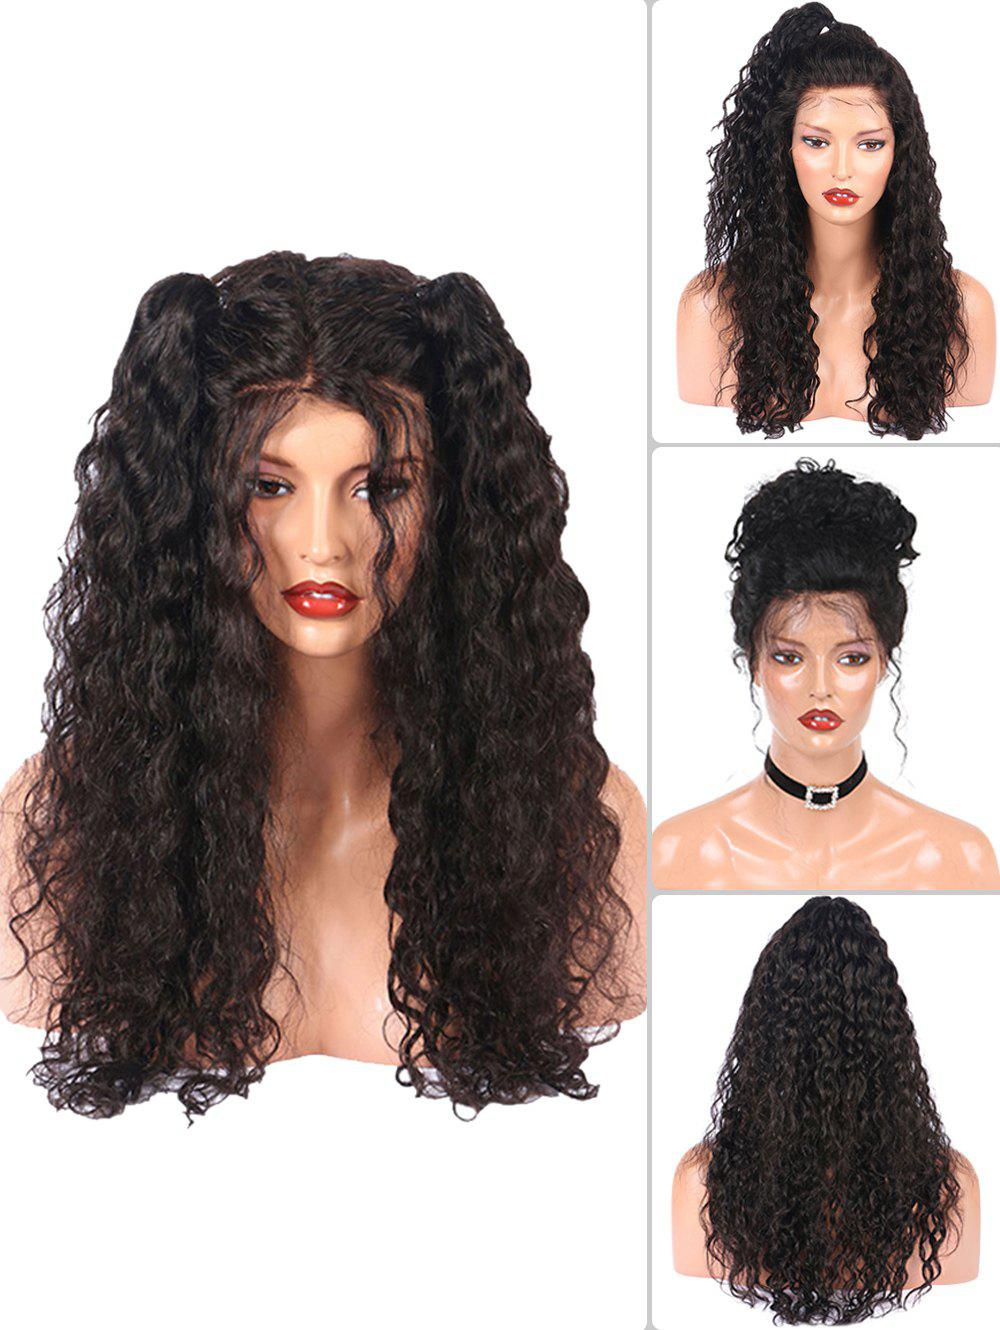 Long Free Part Water Wave Lace Front Synthetic Fiber Wig 2016 top selling synthetic wig natural looking free part black body wave synthetic lace front wig for african american